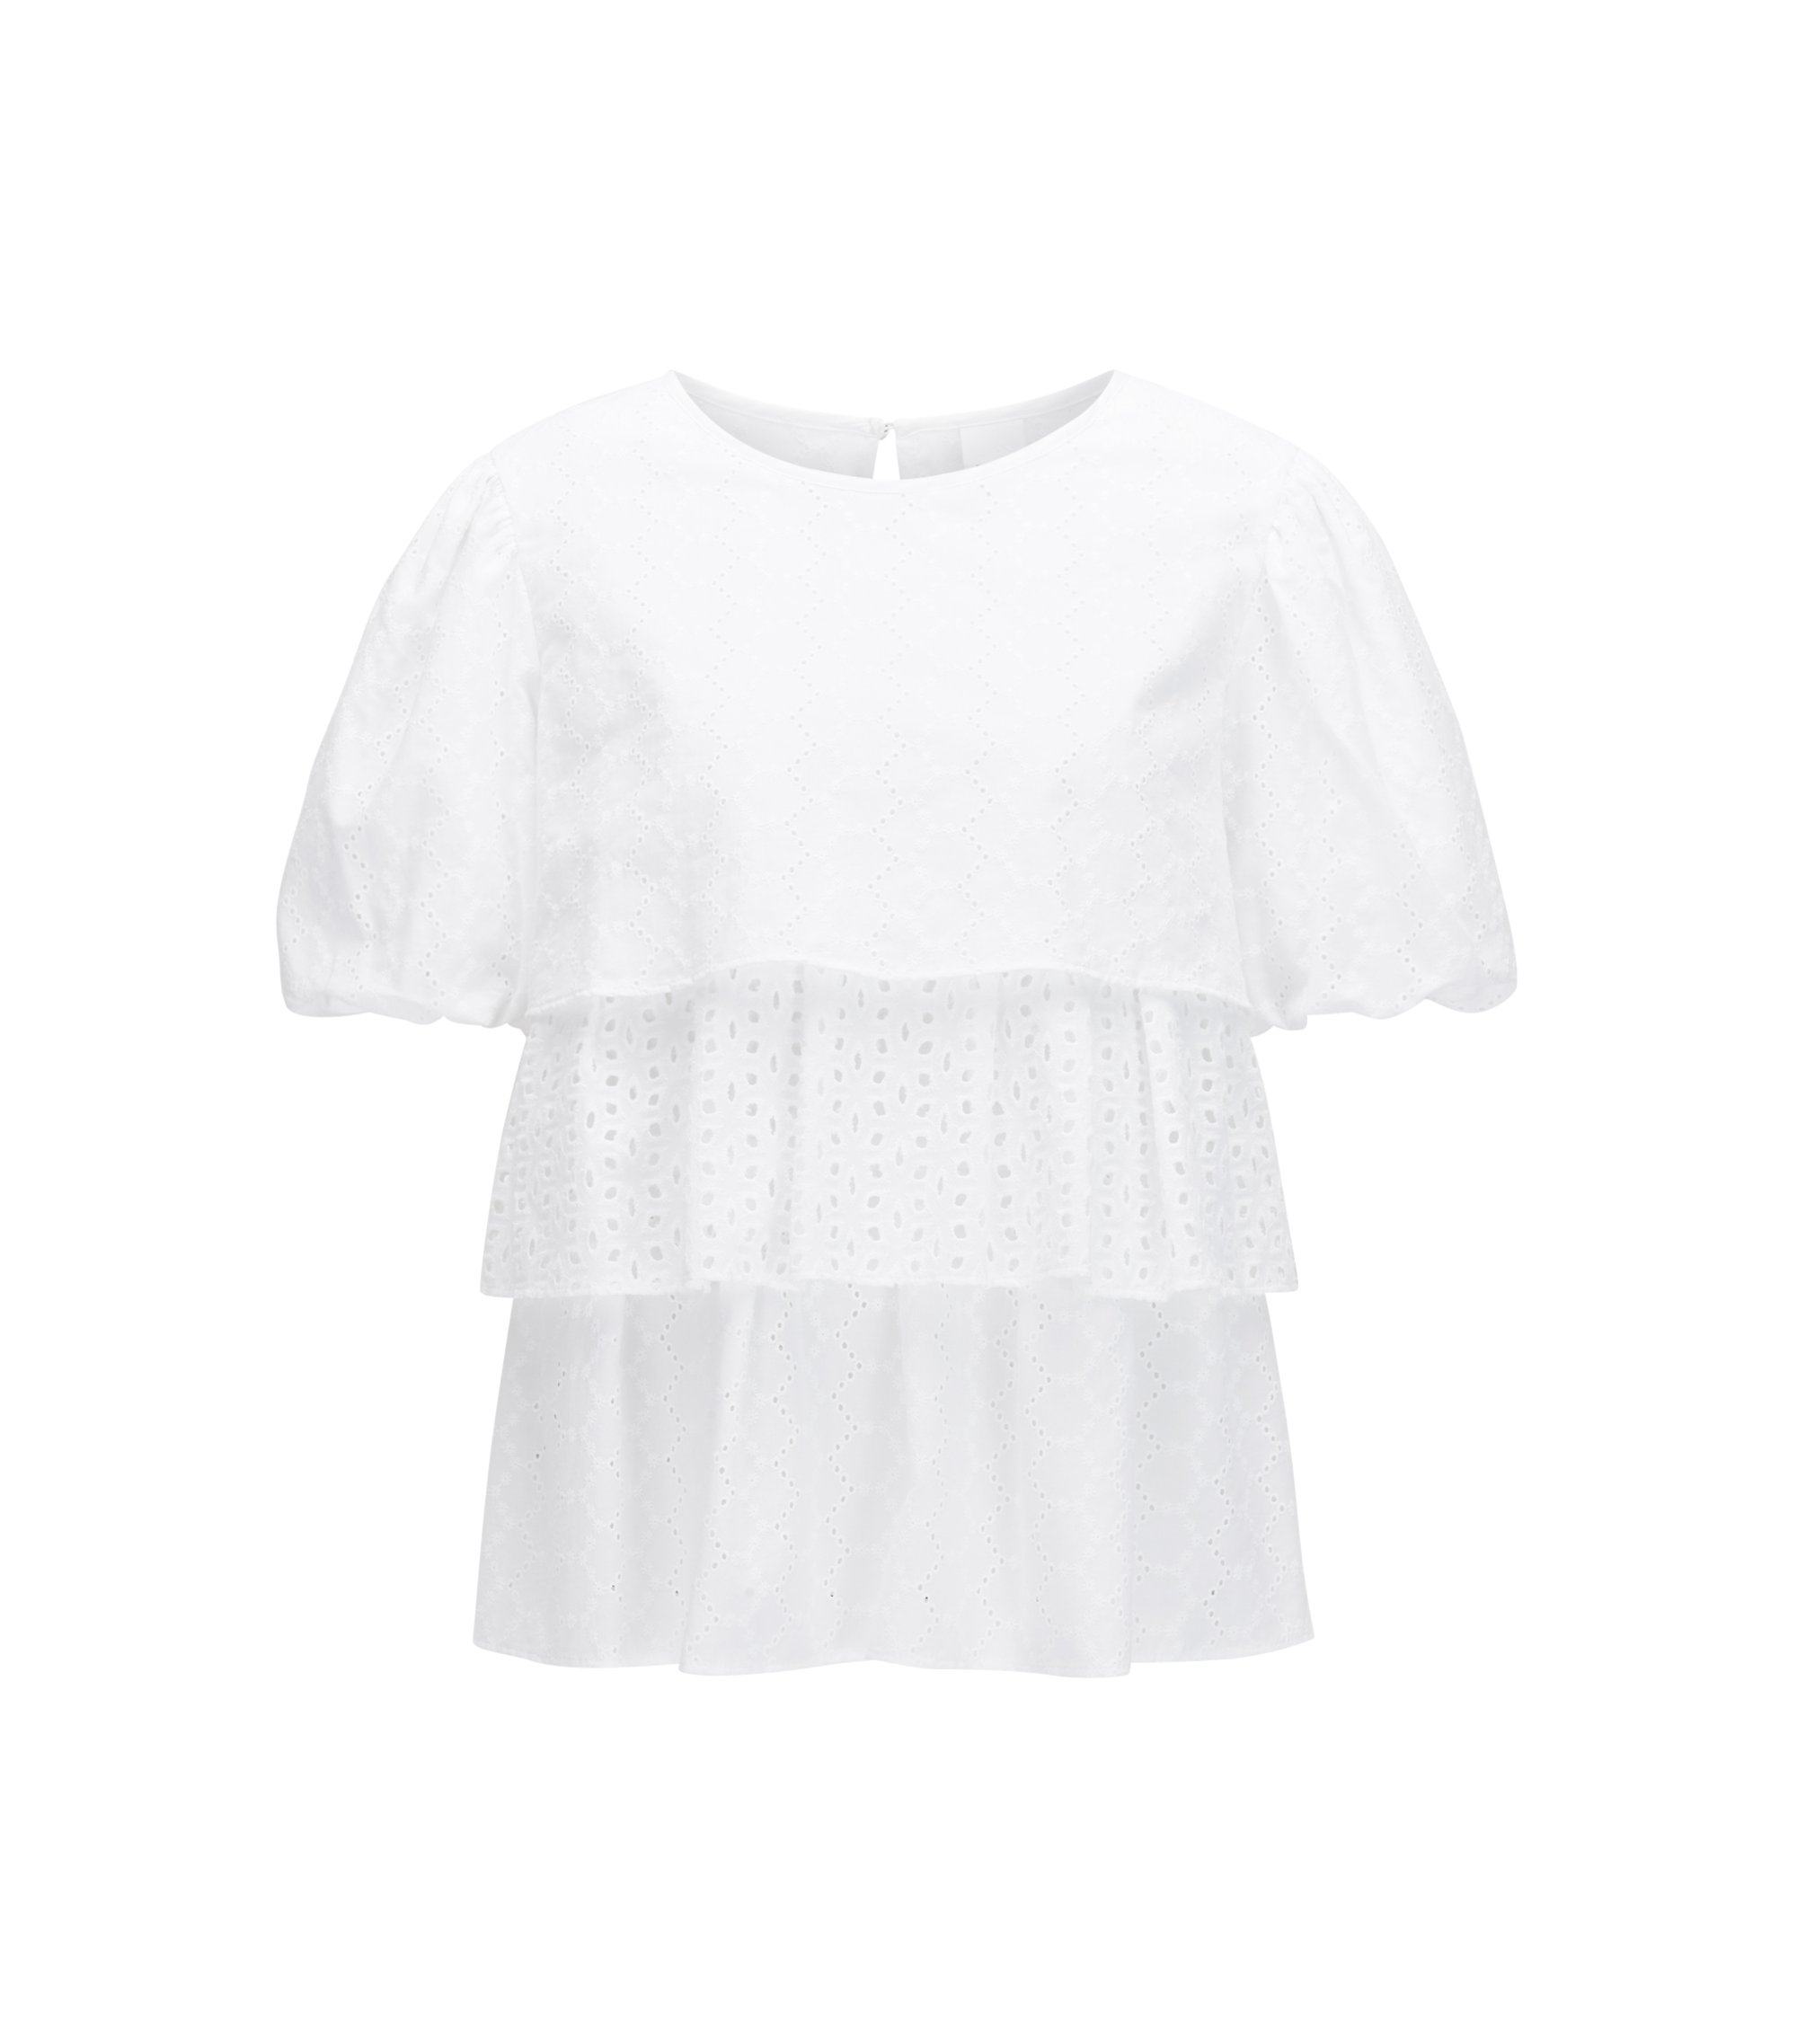 Tiered broderie anglaise top in cotton voile, White